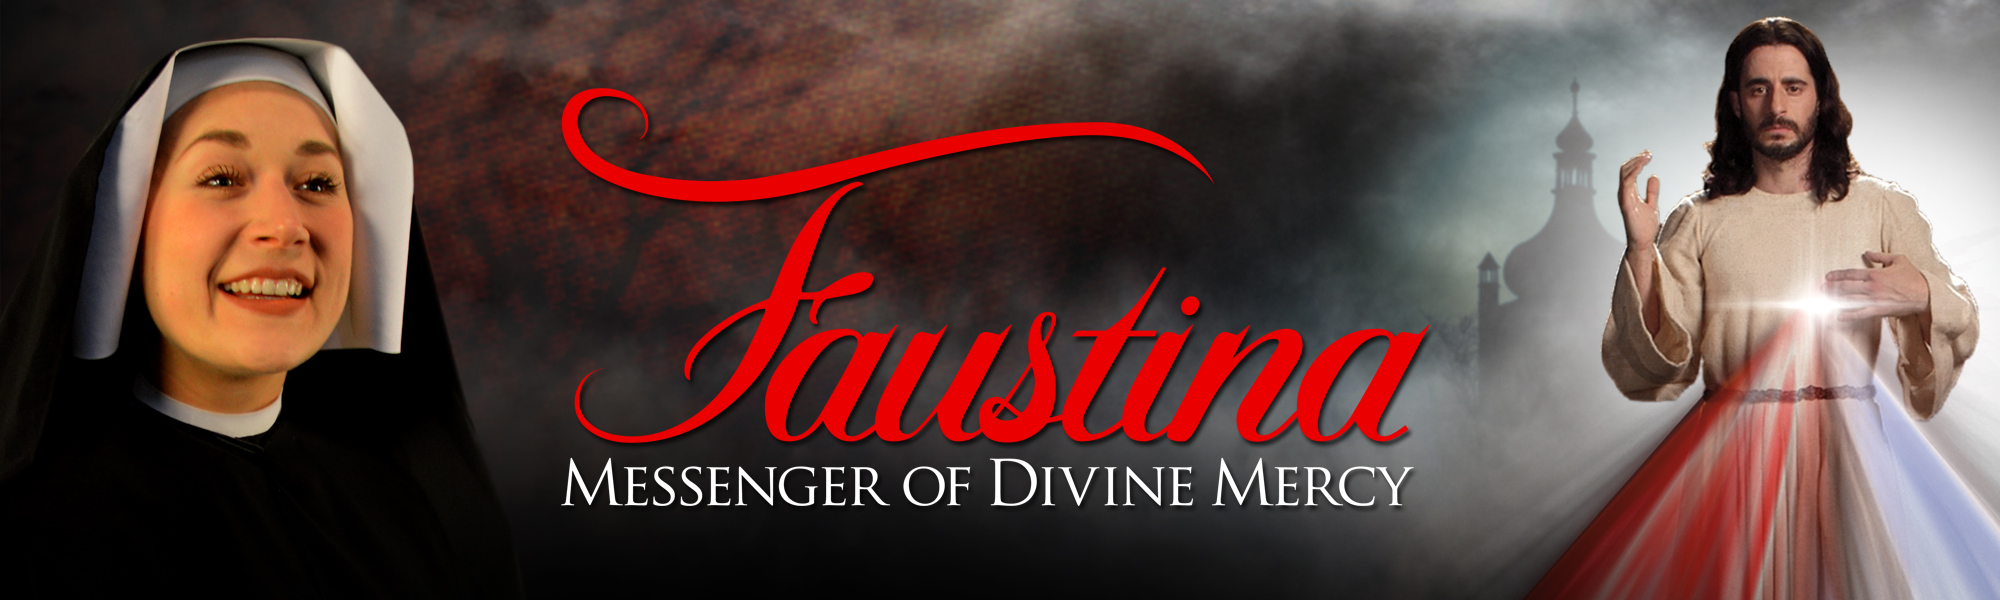 Faustina: Messenger of Divine Mercy